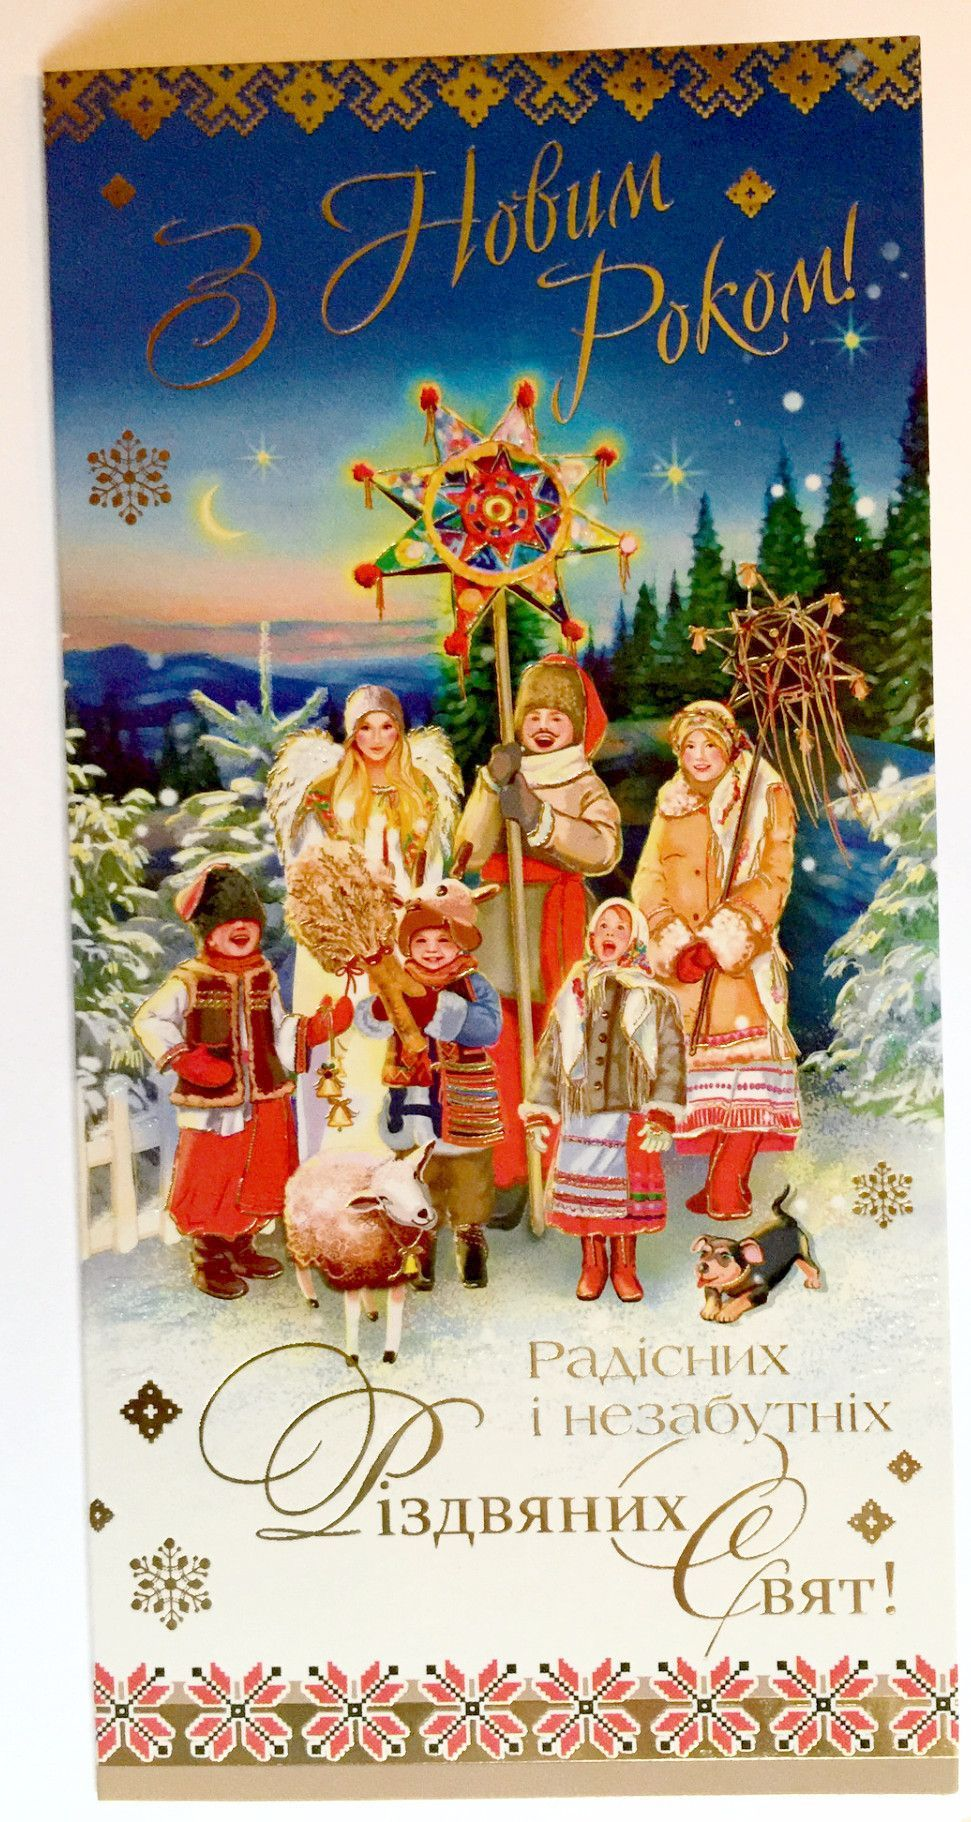 Glossy And Shiny Christmas Cards From Ukraine Amazingly Detailed